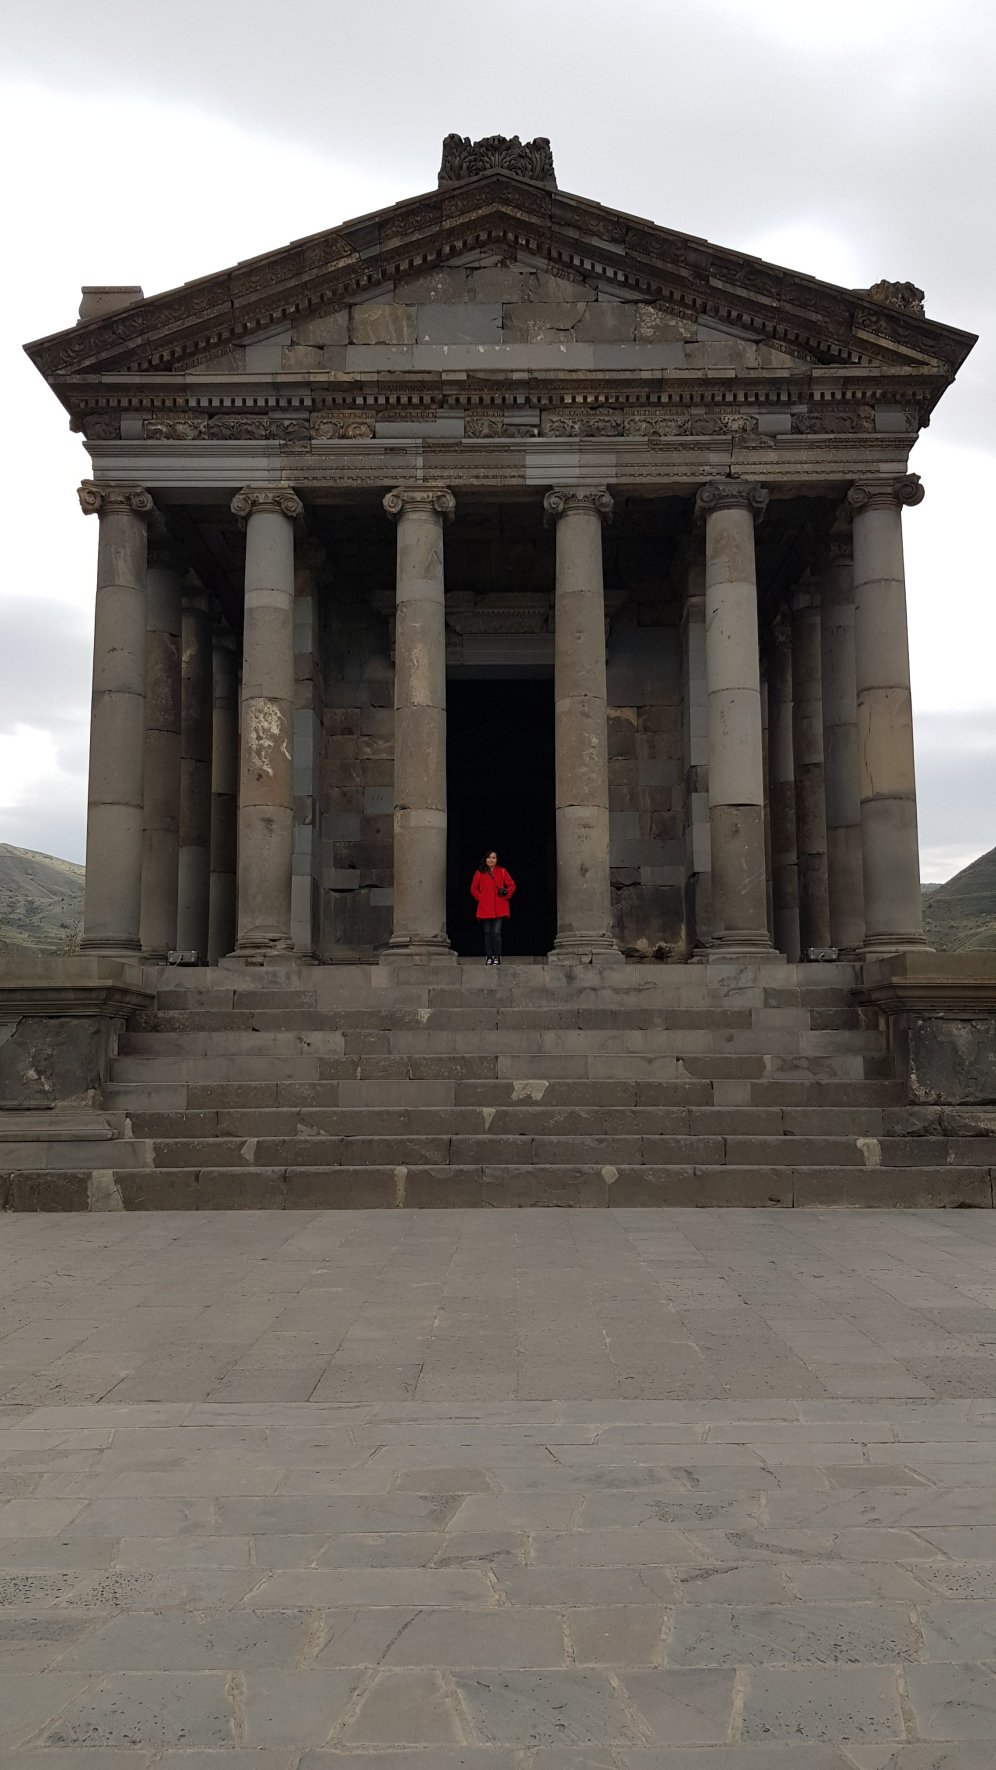 While standing at the pillars of Garni Temple. See? You can have this place all by yourself